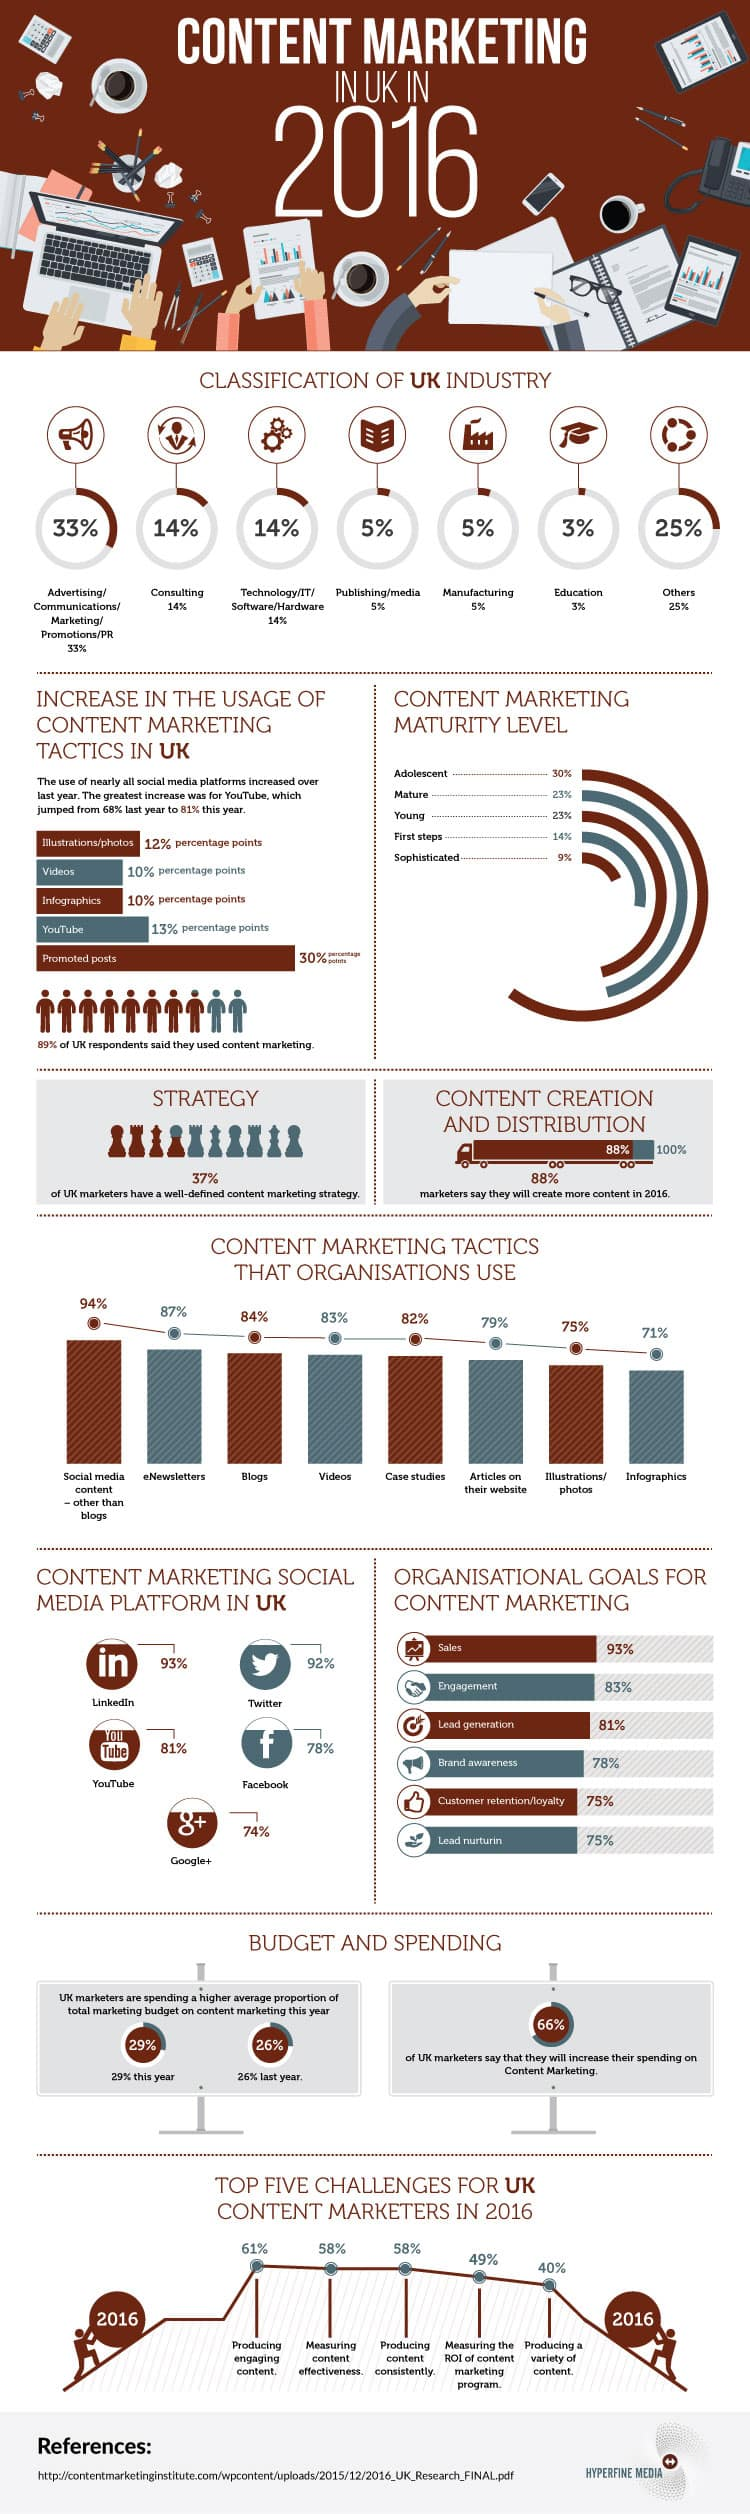 Content Marketing Advice for 2016 Infographic